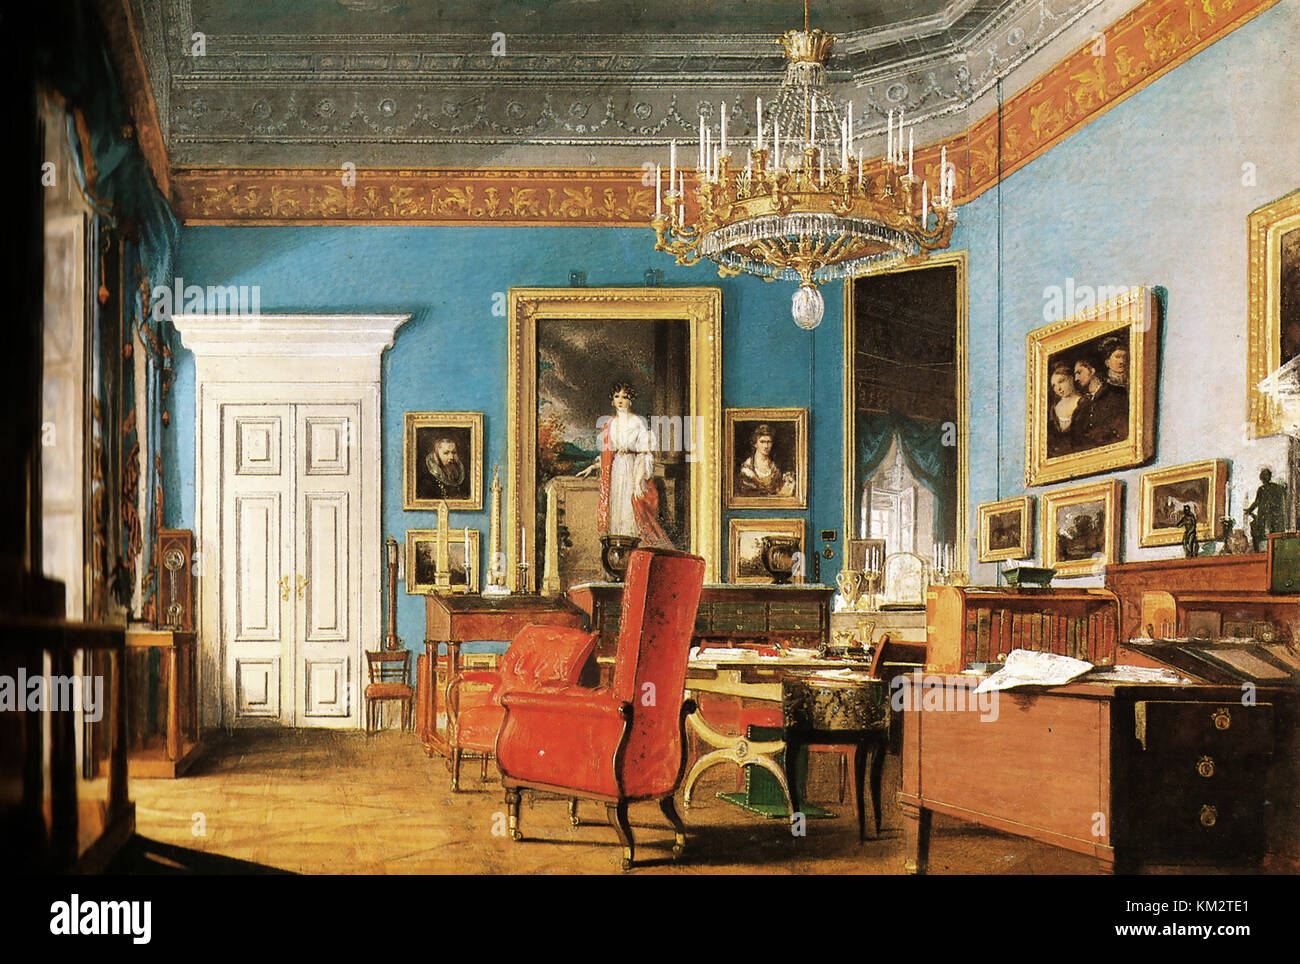 PRINCE KLEMENS von METTERNICH (1773-1859) German diplomat and statesman. His office while Chancellor of the Austrian - Stock Image